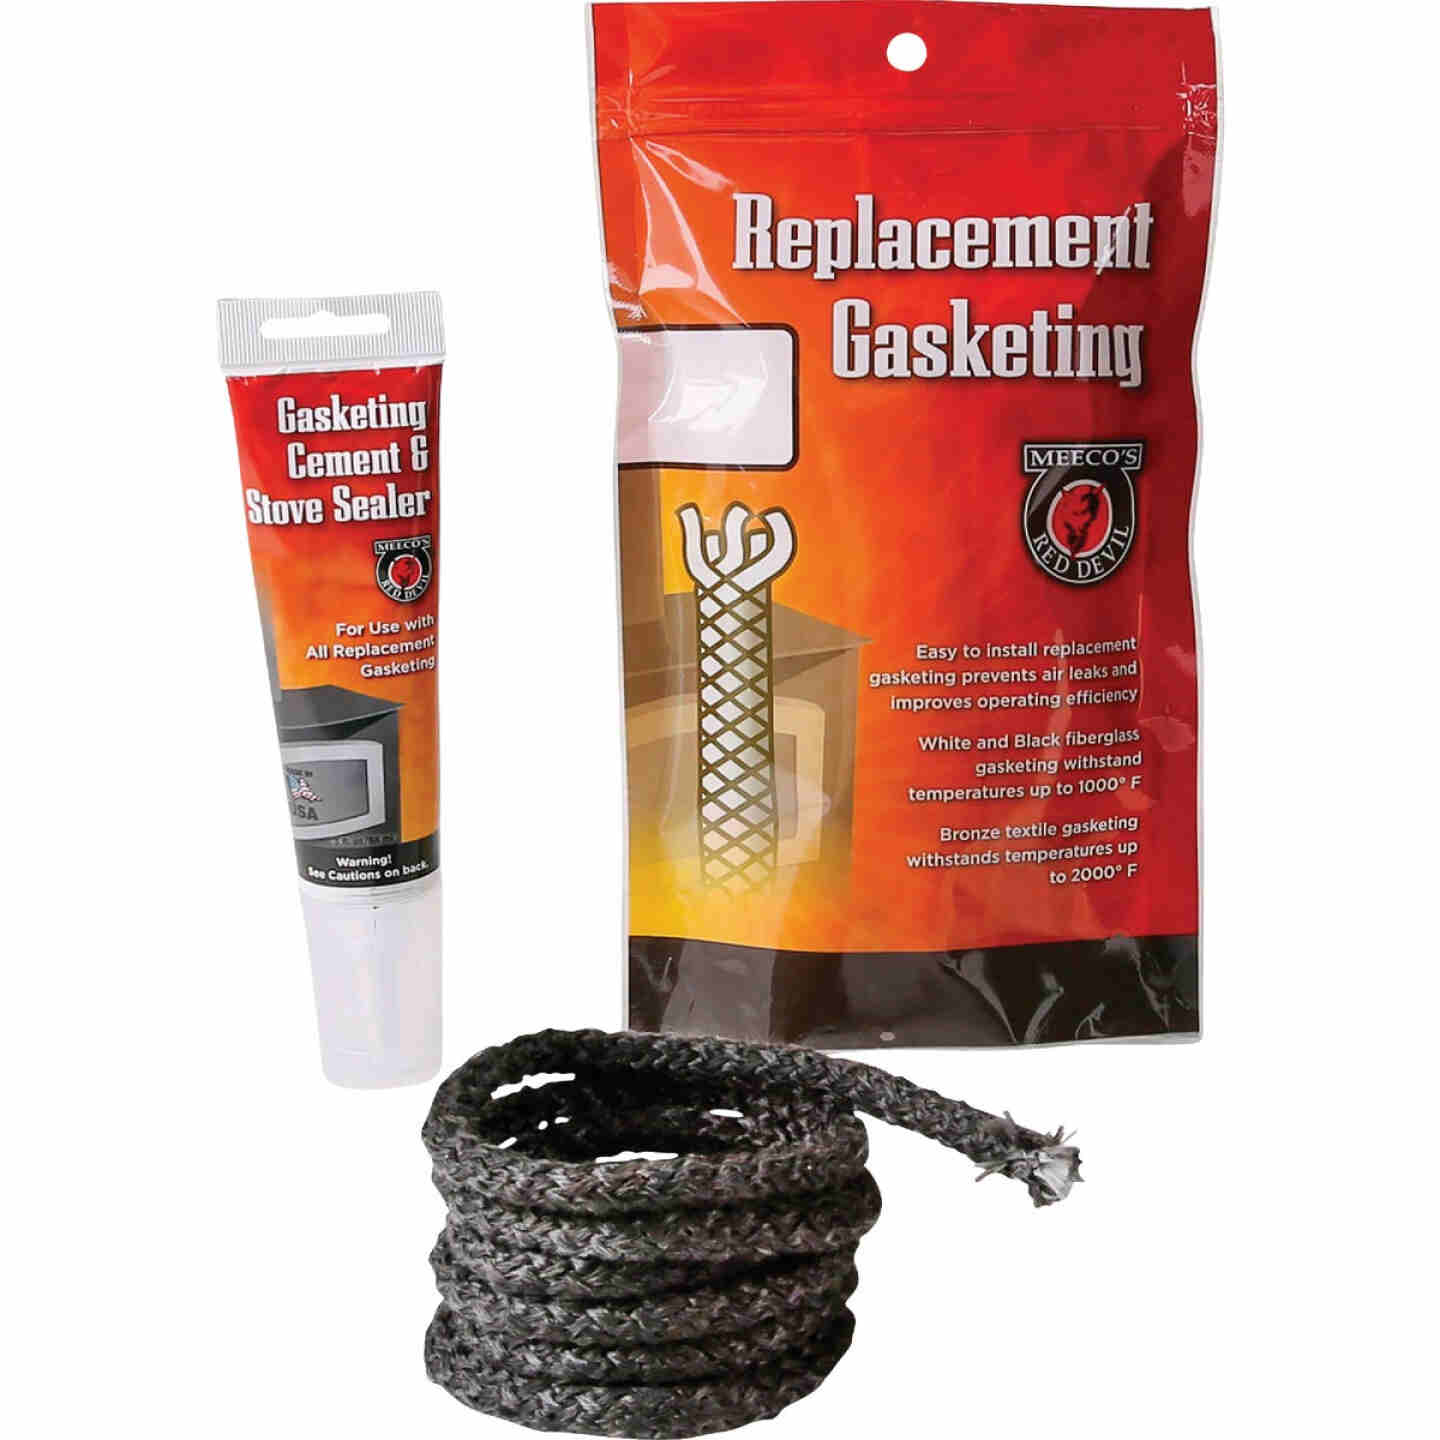 Meeco's Red Devil Gasketing Cement/Stove Sealer and 5/8 In. x 6 Ft. Replacement Rope Gasket Kit Image 1